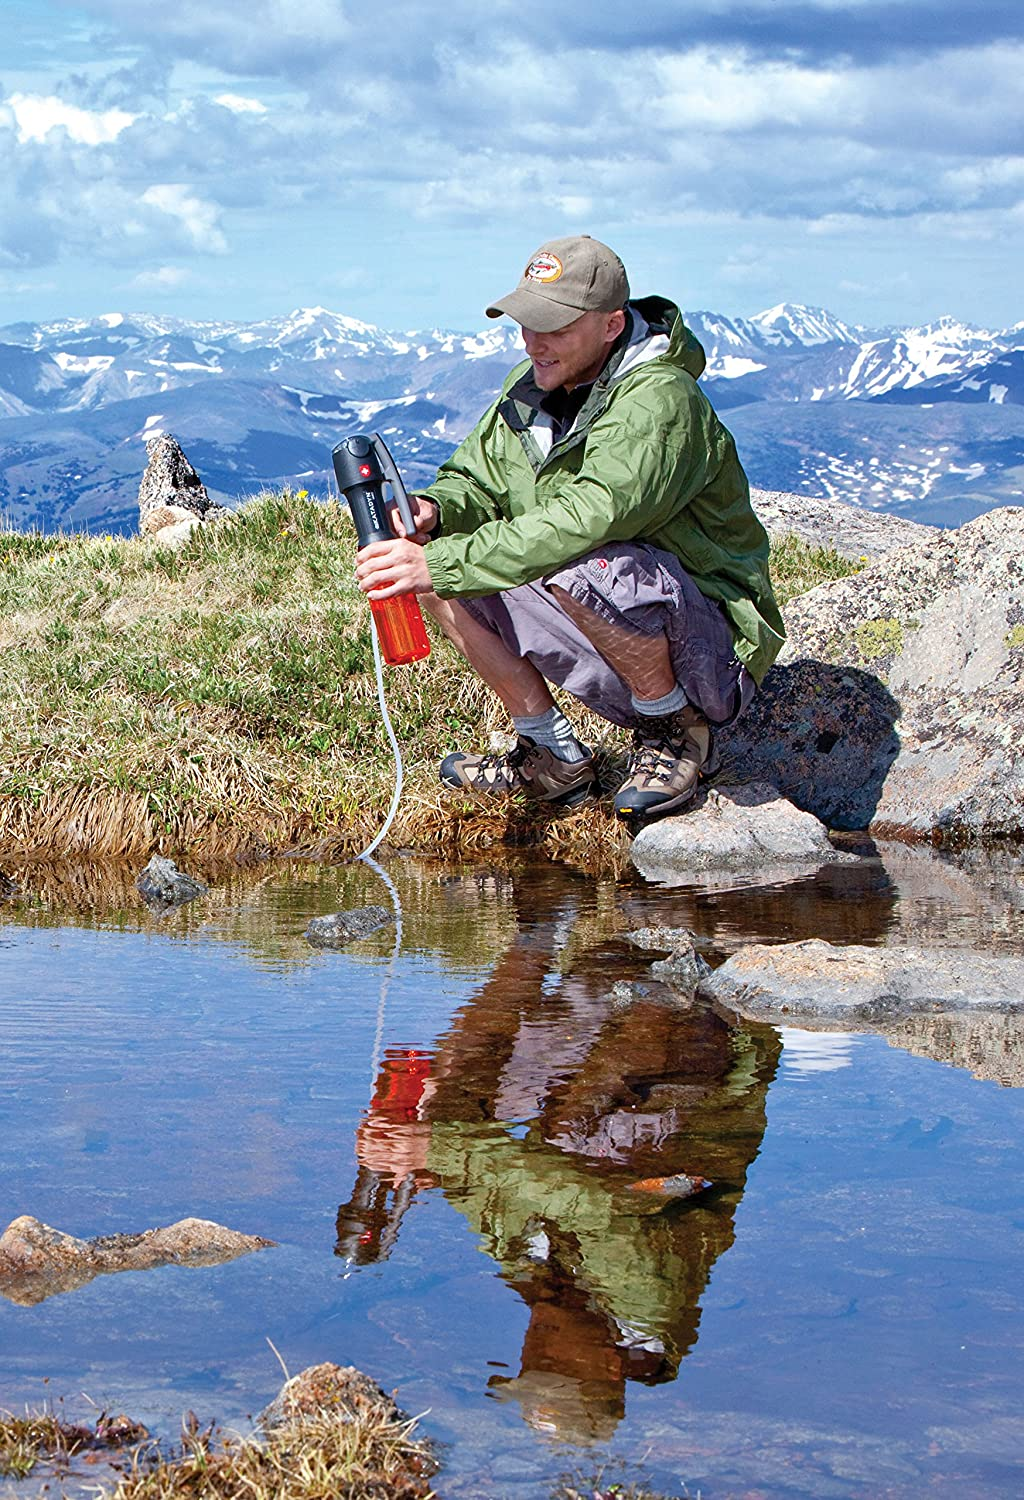 Katadyn Vario Water Filter, Dual Technology Microfilter for Personal or Small Group Camping